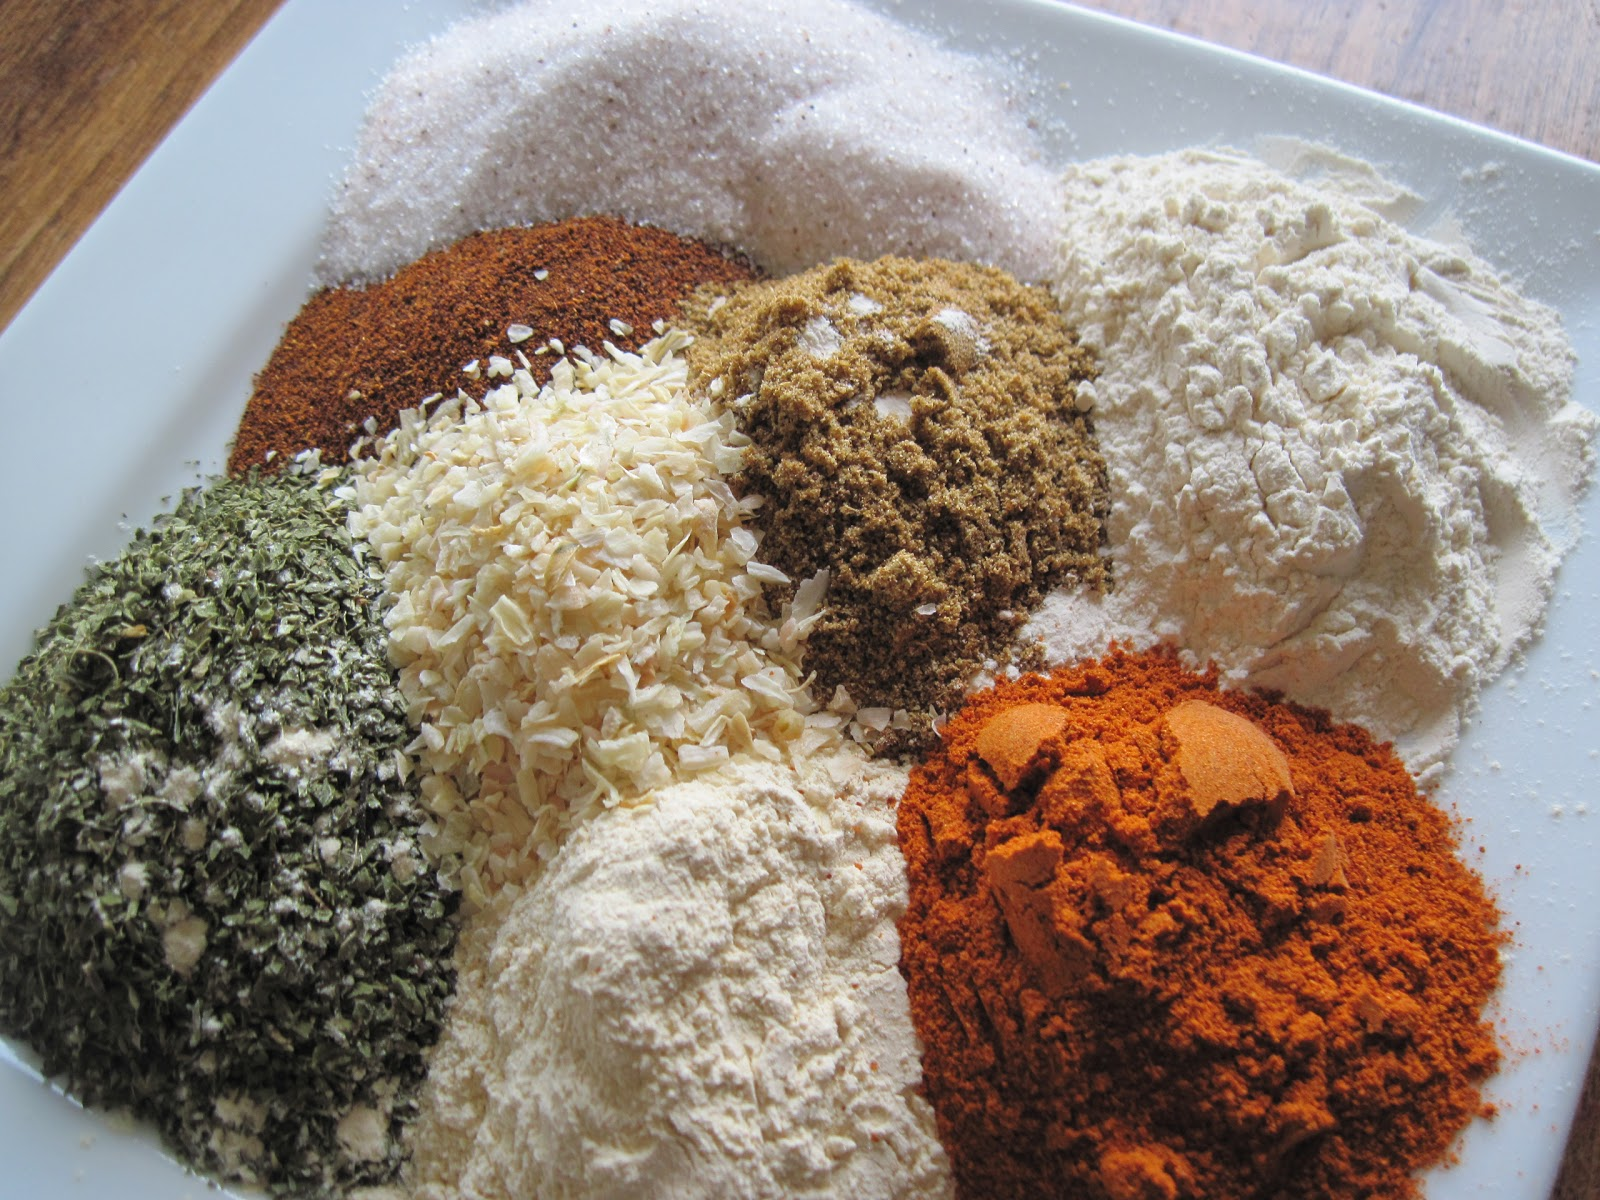 Diy Taco Seasoning Mix Simple Healthy Tasty How To Make Your Own Taco Seasoning